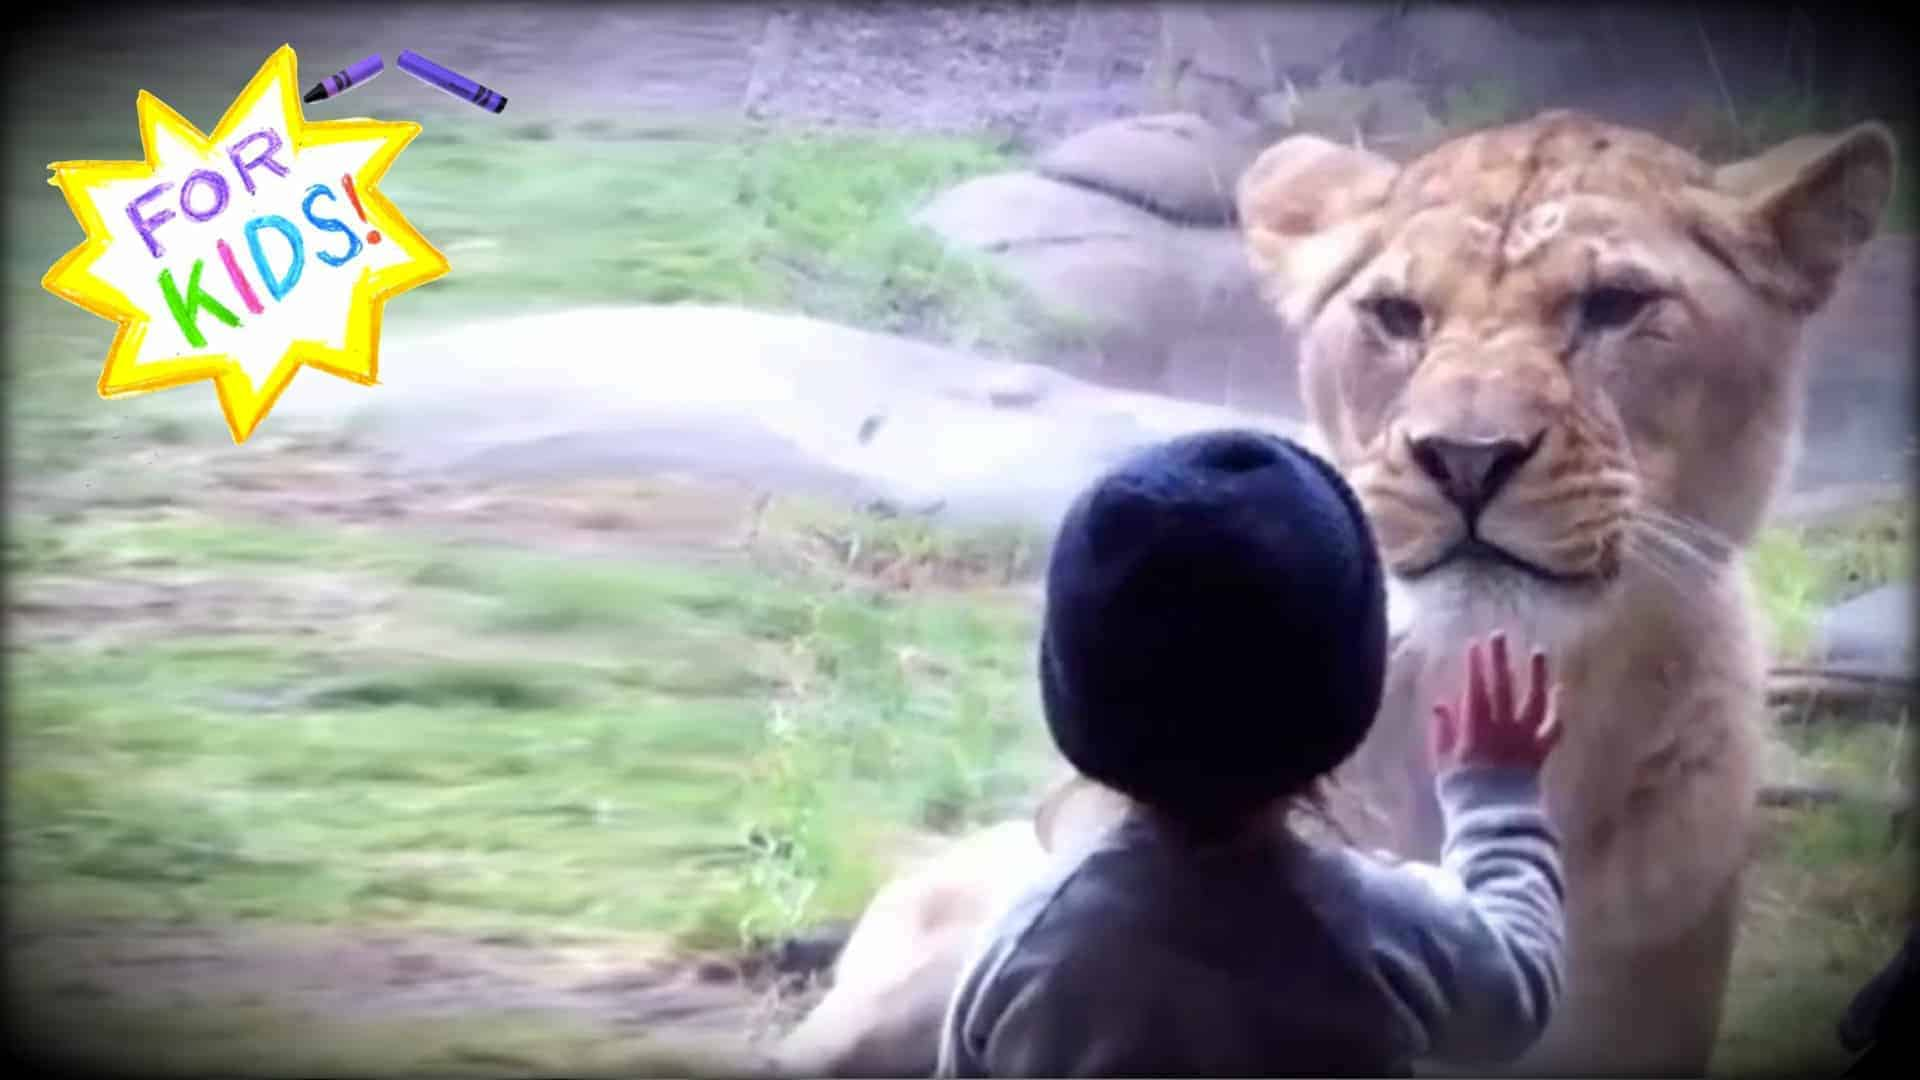 """A small child is seen with their hand up against the glass that separates them from the lioness. The lioness is only inches away and looking directly at the child. In the top left corner is a hand drawn yellow and white star, rendered in crayon, with the words """"For Kids!"""" in various colors written in the center."""